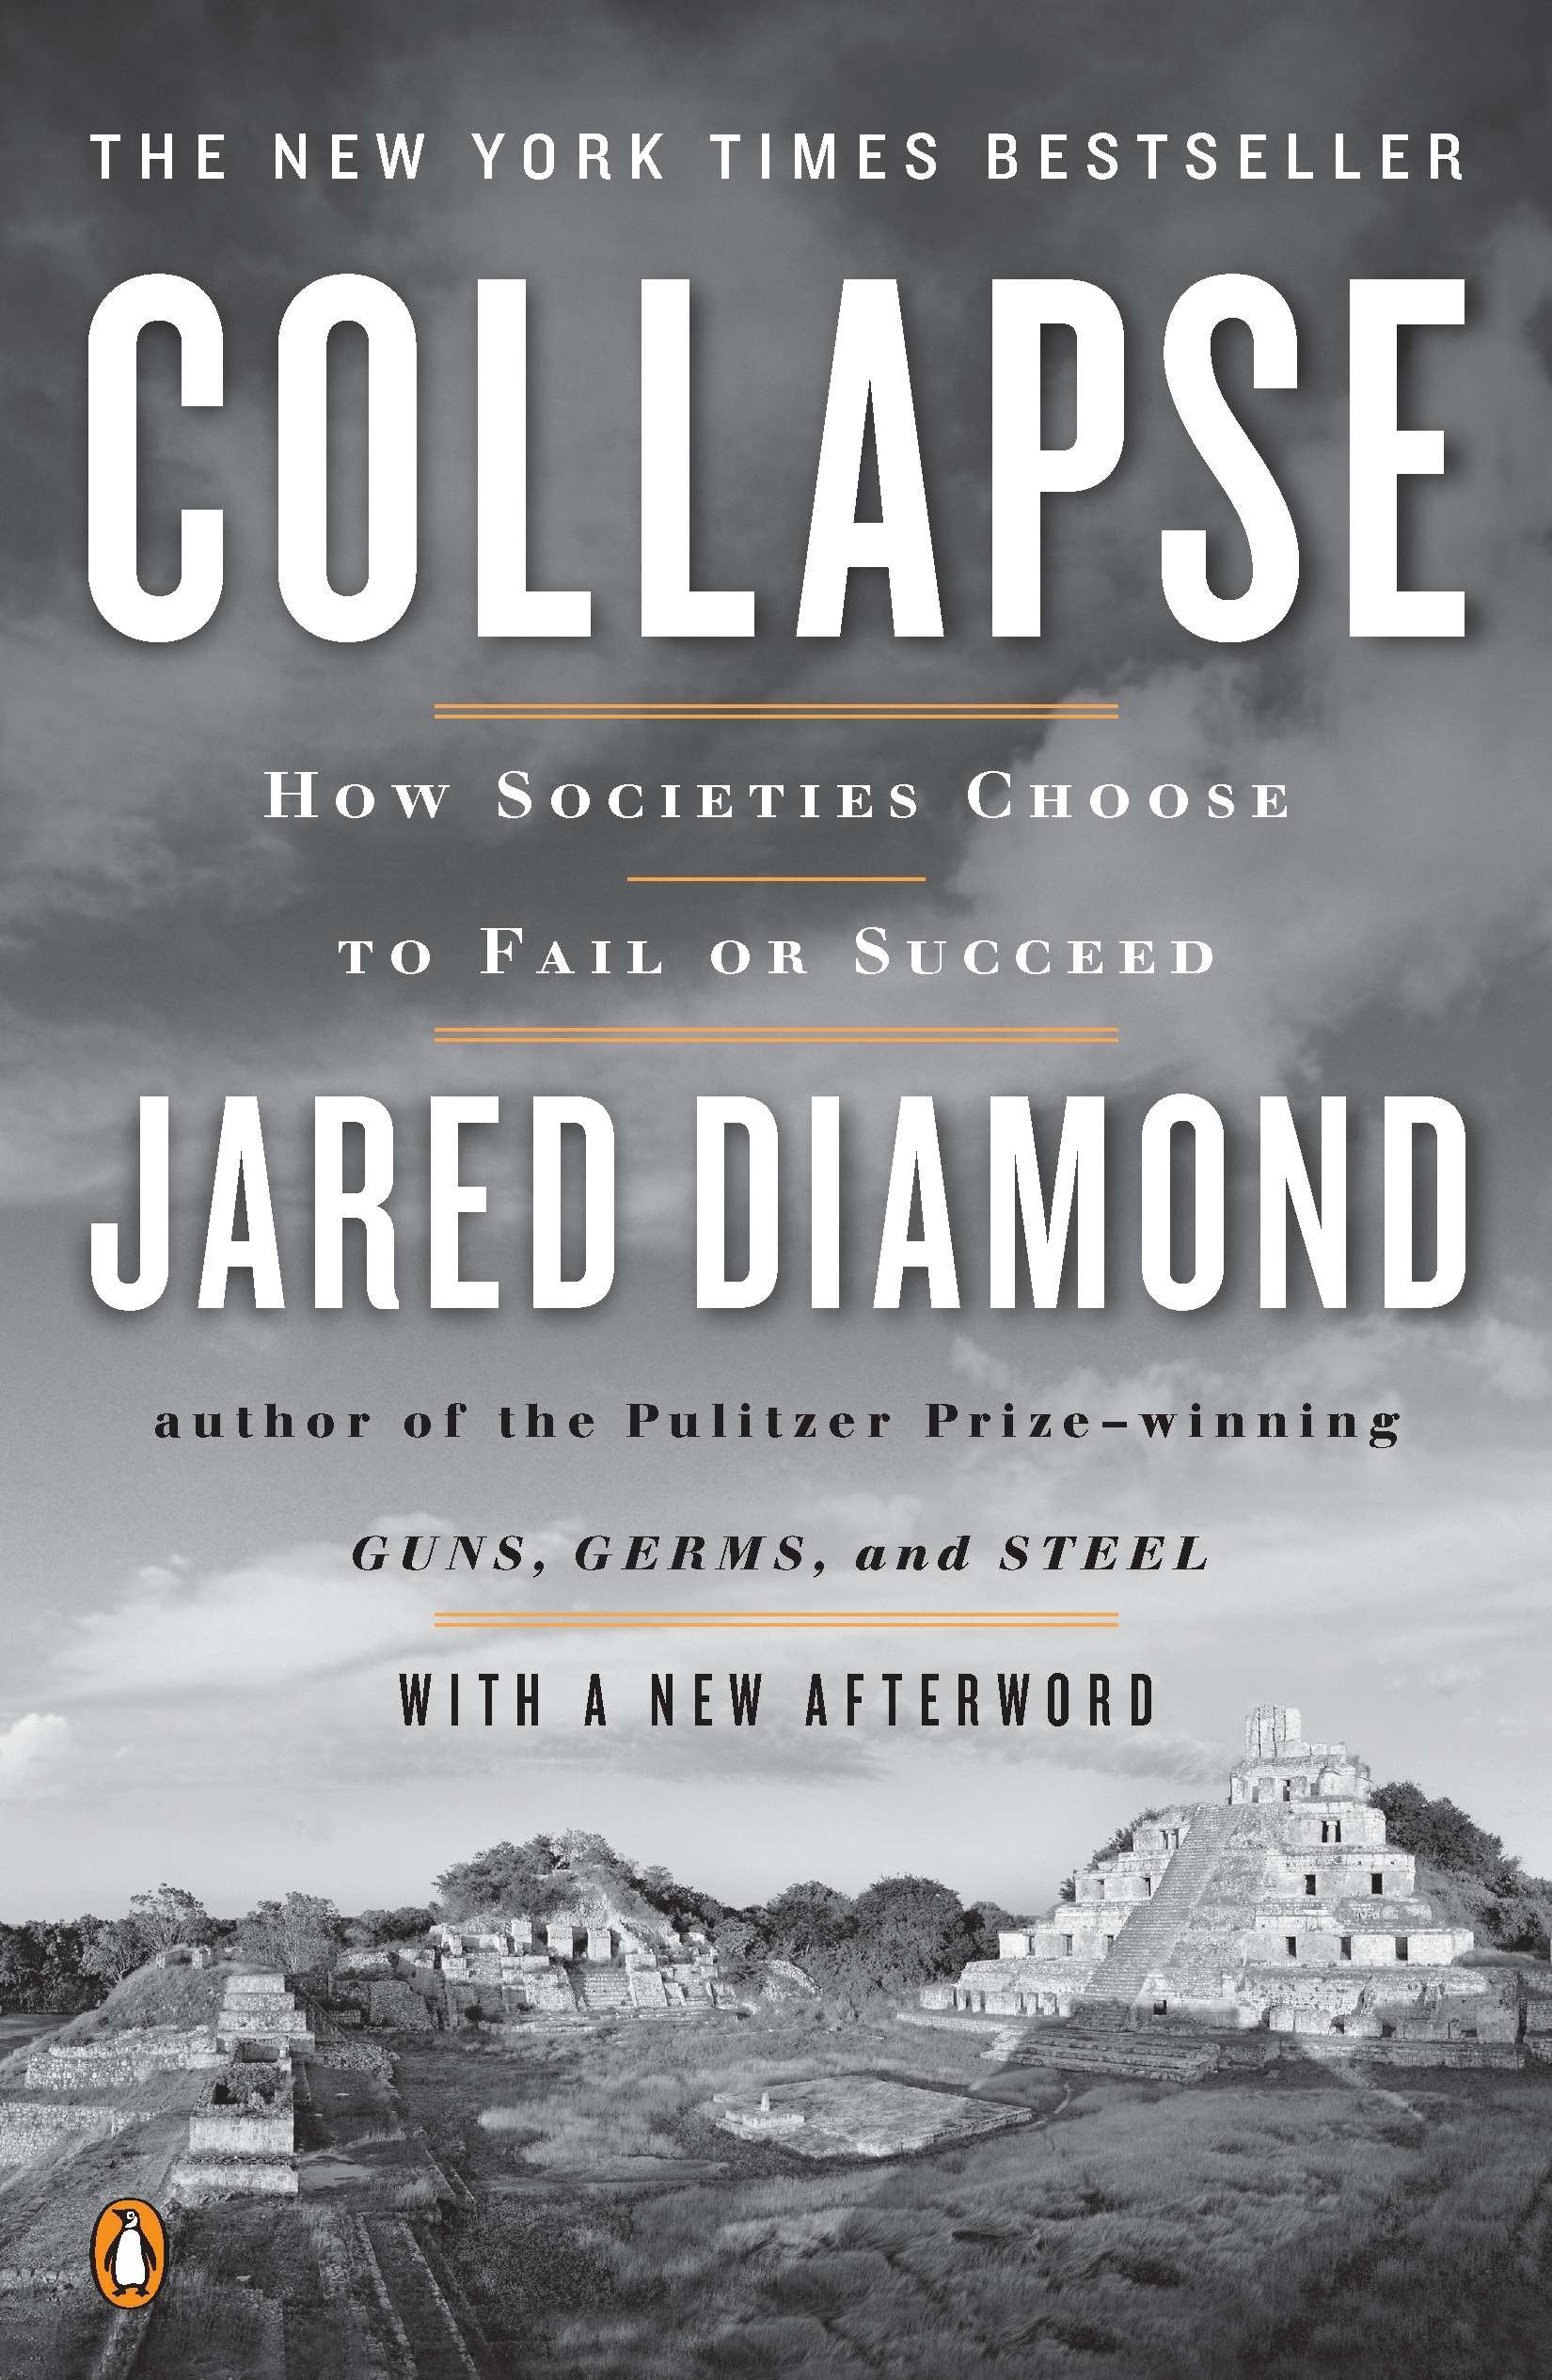 collapse : how societies choose to fail or succeed - By Jared DiamondJared Diamond's Collapse: How Societies Choose to Fail or Succeed is the glass-half-empty follow-up to his Pulitzer Prize-winning Guns, Germs, and Steel. While Guns, Germs, and Steel explained the geographic and environmental reasons why some human populations have flourished, Collapse uses the same factors to examine why ancient societies, including the Anasazi of the American Southwest and the Viking colonies of Greenland, as well as modern ones such as Rwanda, have fallen apart. Not every collapse has an environmental origin, but an eco-meltdown is often the main catalyst, he argues, particularly when combined with society's response to (or disregard for) the coming disaster. Still, right from the outset of Collapse, the author makes clear that this is not a mere environmentalist's diatribe. He begins by setting the book's main question in the small communities of present-day Montana as they face a decline in living standards and a depletion of natural resources. Once-vital mines now leak toxins into the soil, while prion diseases infect some deer and elk and older hydroelectric dams have become decrepit. On all these issues, and particularly with the hot-button topic of logging and wildfires, Diamond writes with equanimity.Because he's addressing such significant issues within a vast span of time, Diamond can occasionally speak too briefly and assume too much, and at times his shorthand remarks may cause careful readers to raise an eyebrow. But in general, Diamond provides fine and well-reasoned historical examples, making the case that many times, economic and environmental concerns are one and the same. With Collapse, Diamond hopes to jog our collective memory to keep us from falling for false analogies or forgetting prior experiences, and thereby save us from potential devastations to come. While it might seem a stretch to use medieval Greenland and the Maya to convince a skeptic about the seriousness of global warming, it's exactly this type of cross-referencing that makes Collapse so compelling.